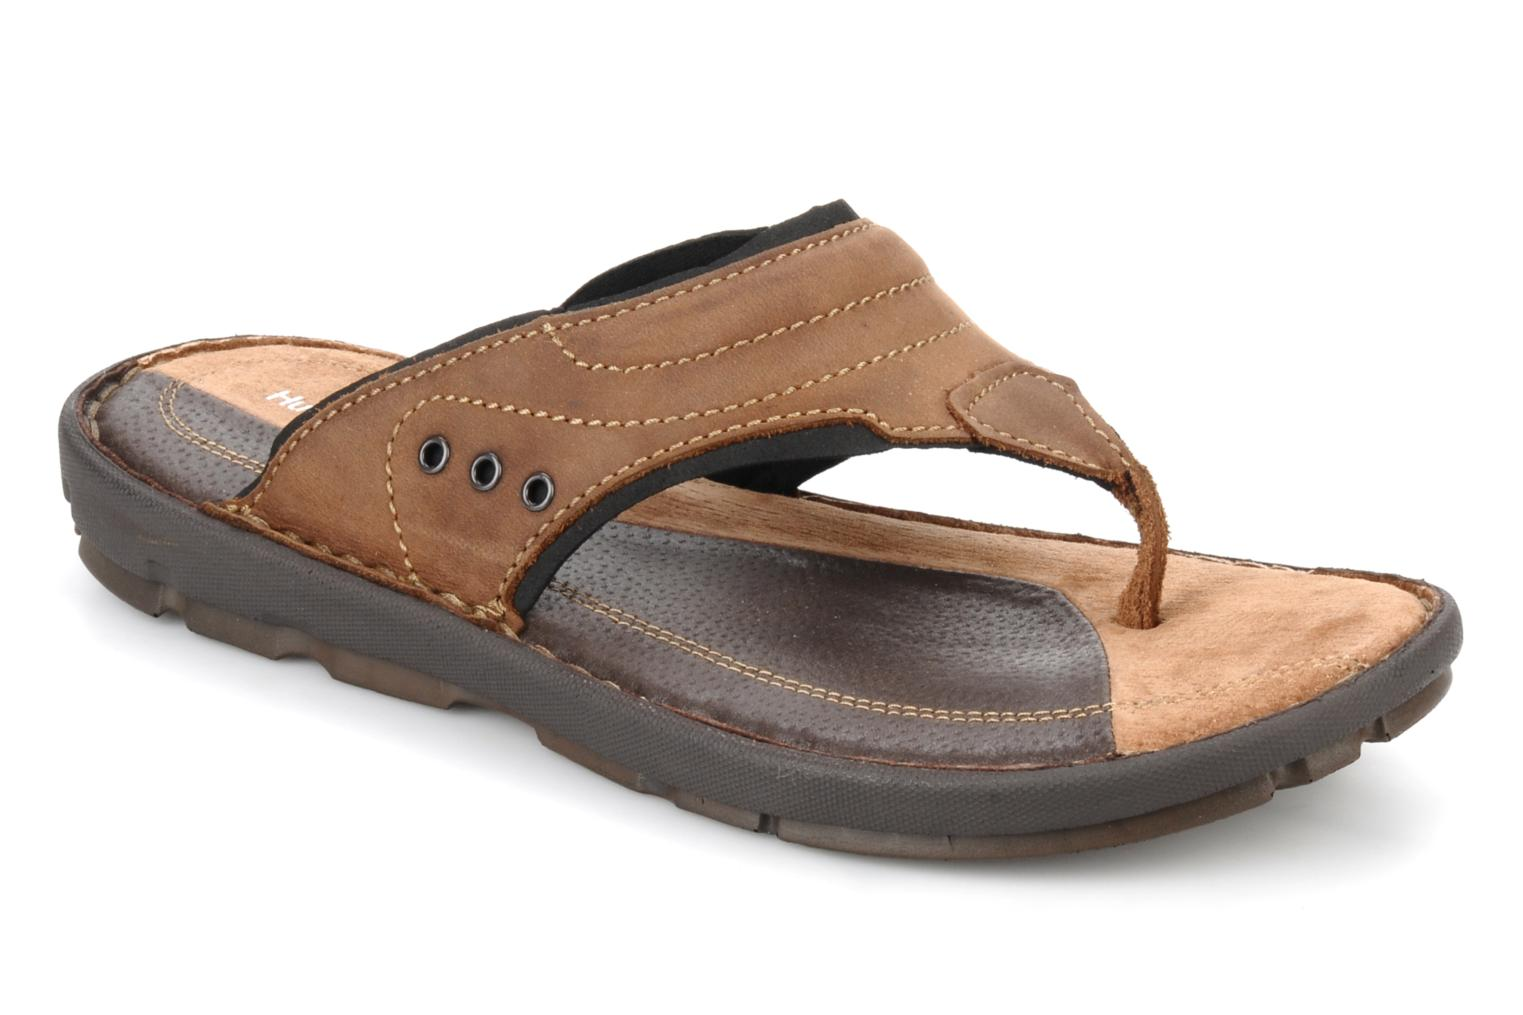 Shop for brands you love on sale. Discounted shoes, clothing, accessories and more at trueofilfis.gq! Score on the Style, Score on the Price. Hush Puppies Sandals 95 items found. Sort By. 95 items. View. Sort By. Filter (2) Your Selections. Shoes Hush Puppies (95)Price. $ and Under (4)$ and Under (16)$ and Under (56).